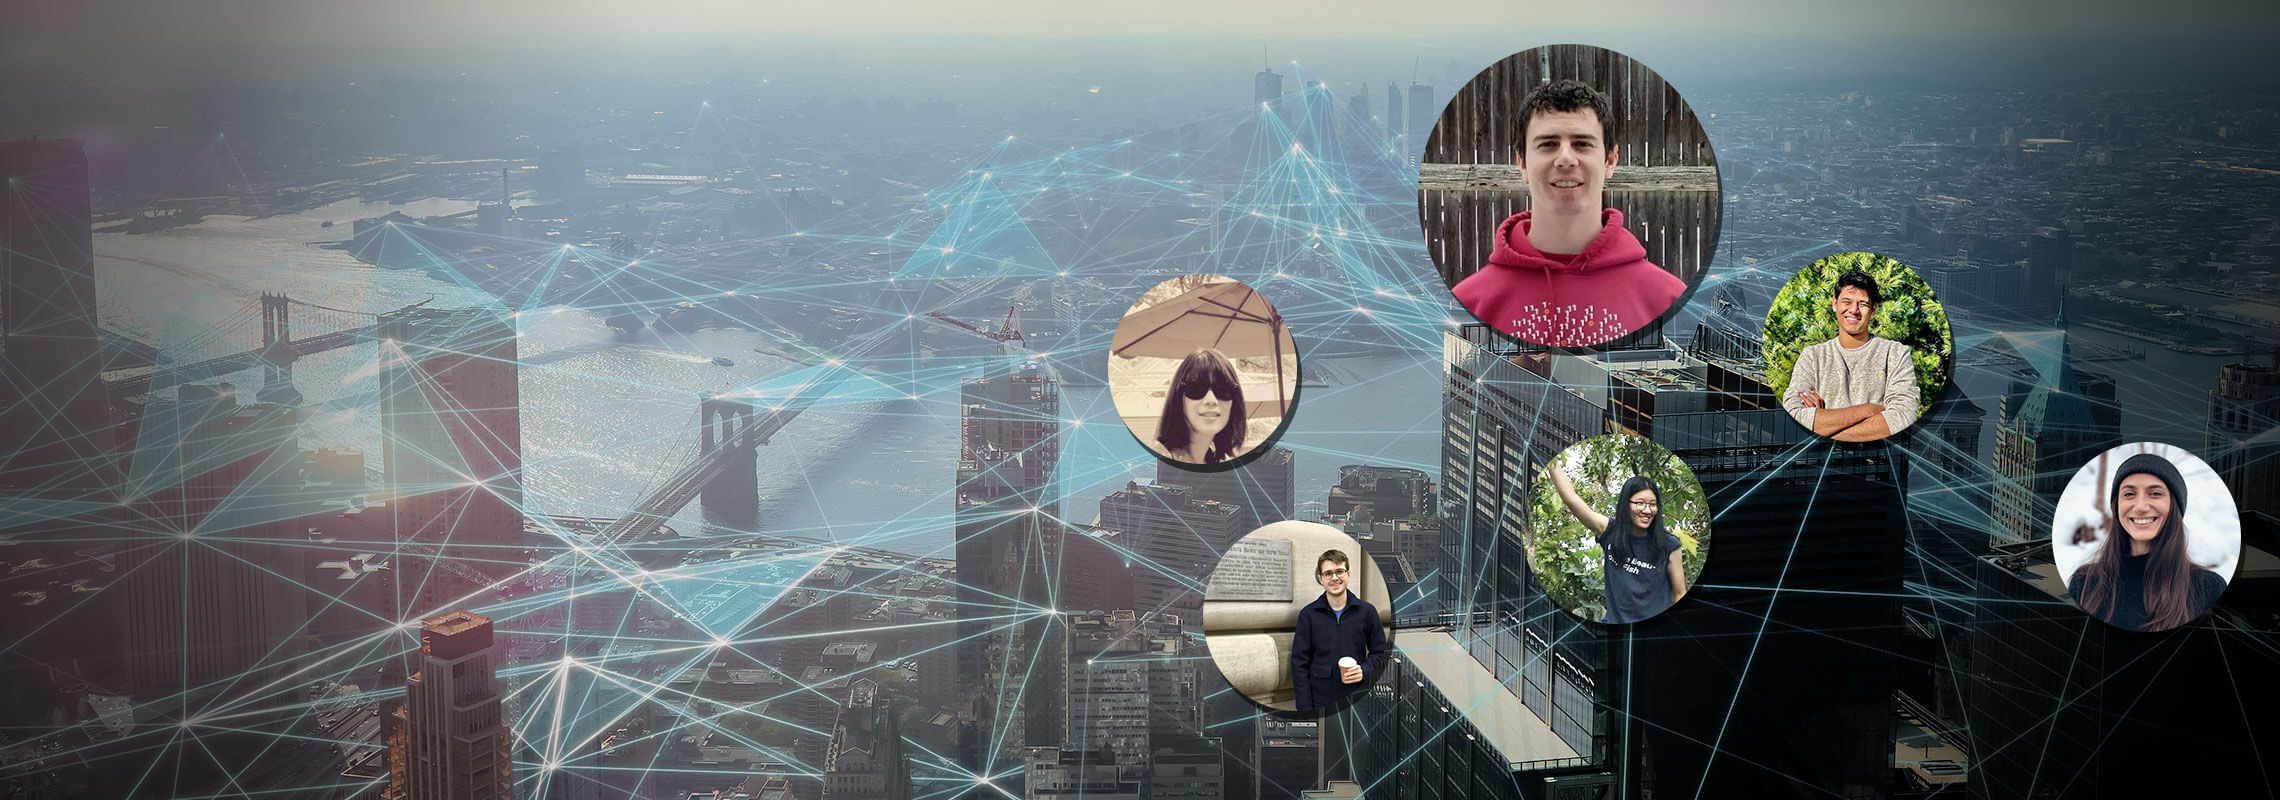 Team members over a networked cityscape